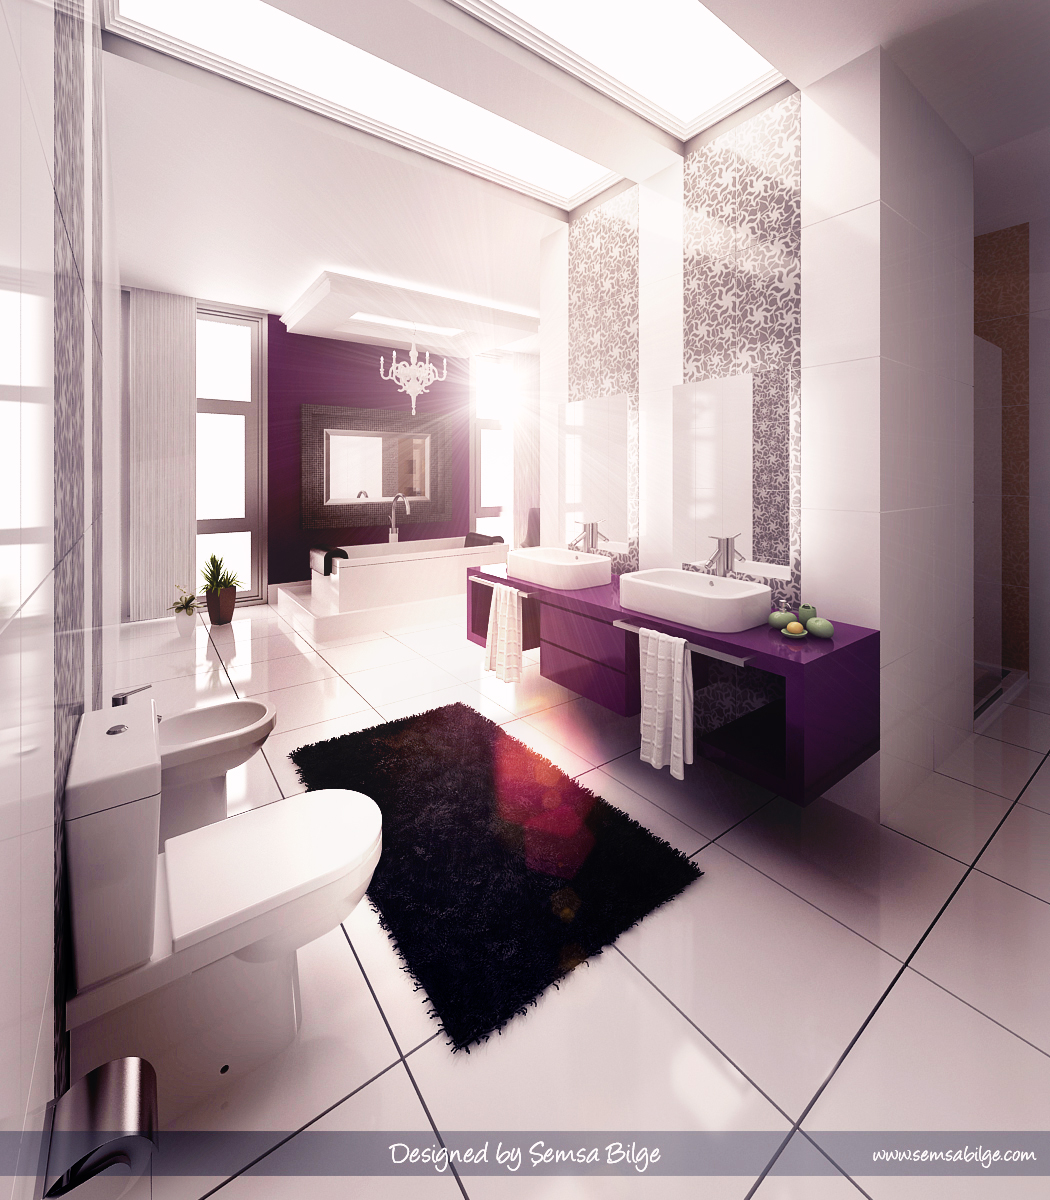 Inspiring bathroom designs for the soul for Bathroom design inspiration